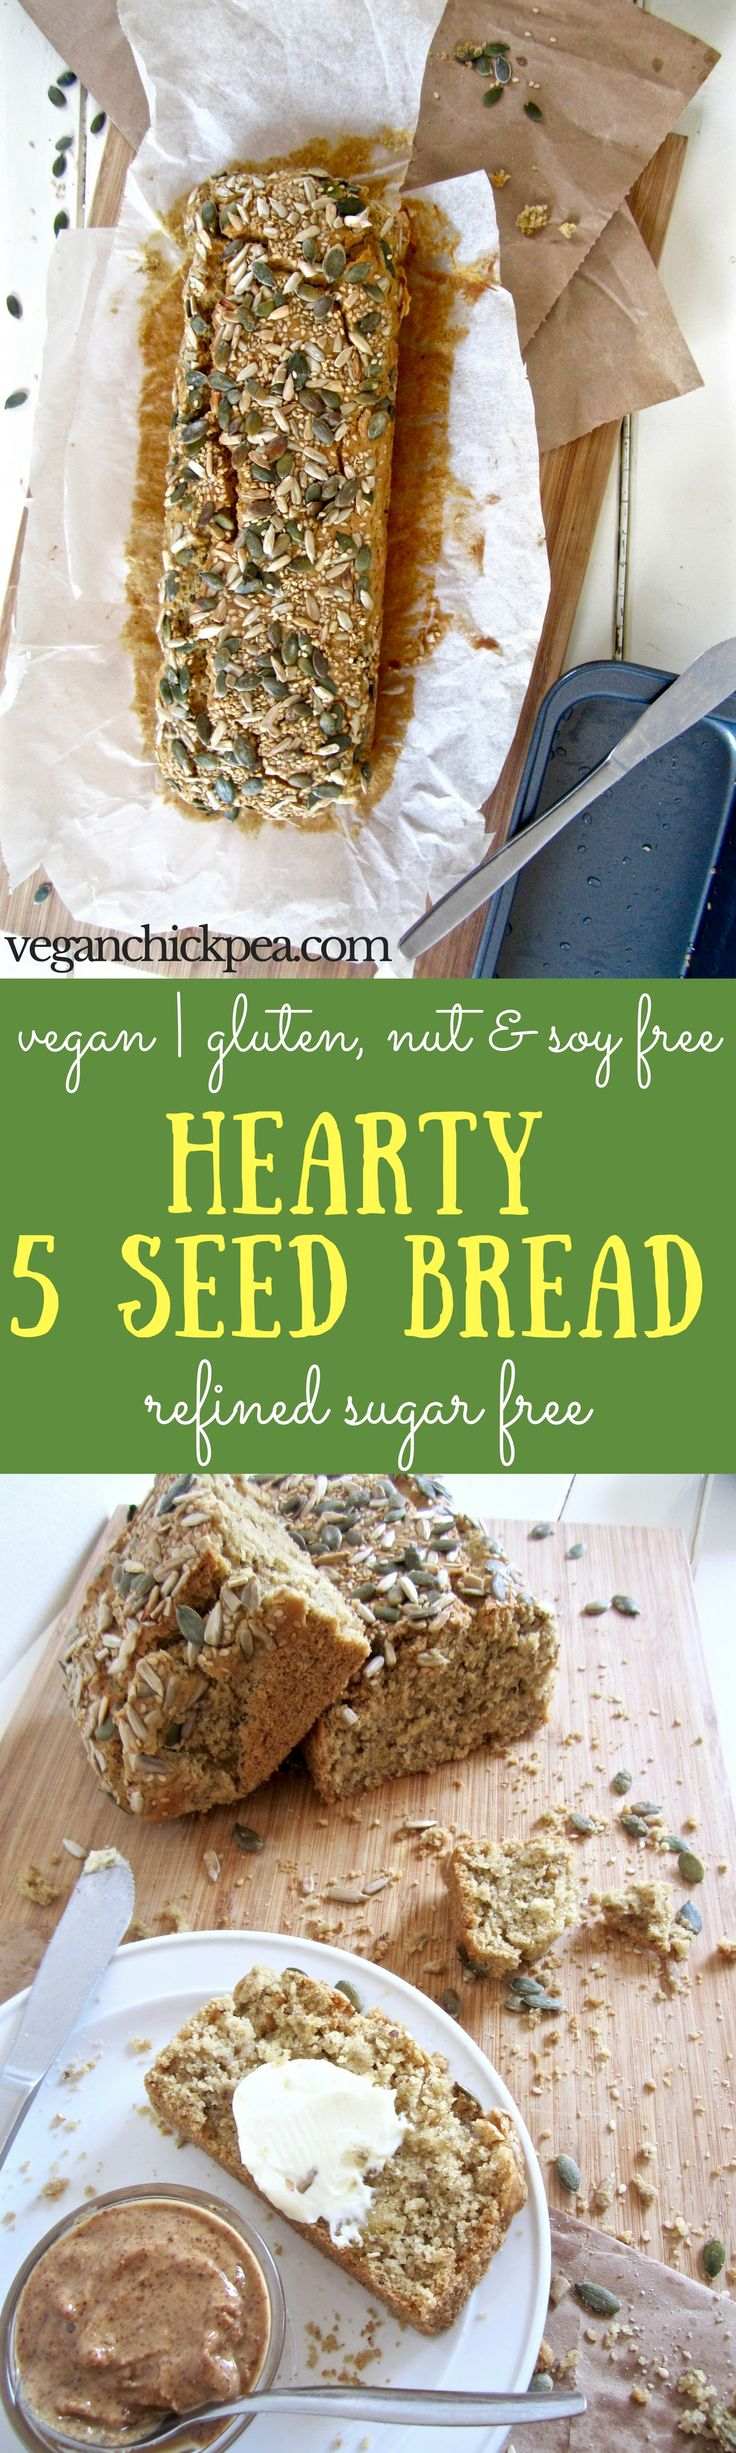 Hearty 5 Seed Bread recipe - an everyday bread that is vegan, gluten / nut / refined sugar free! | veganchickpea.com